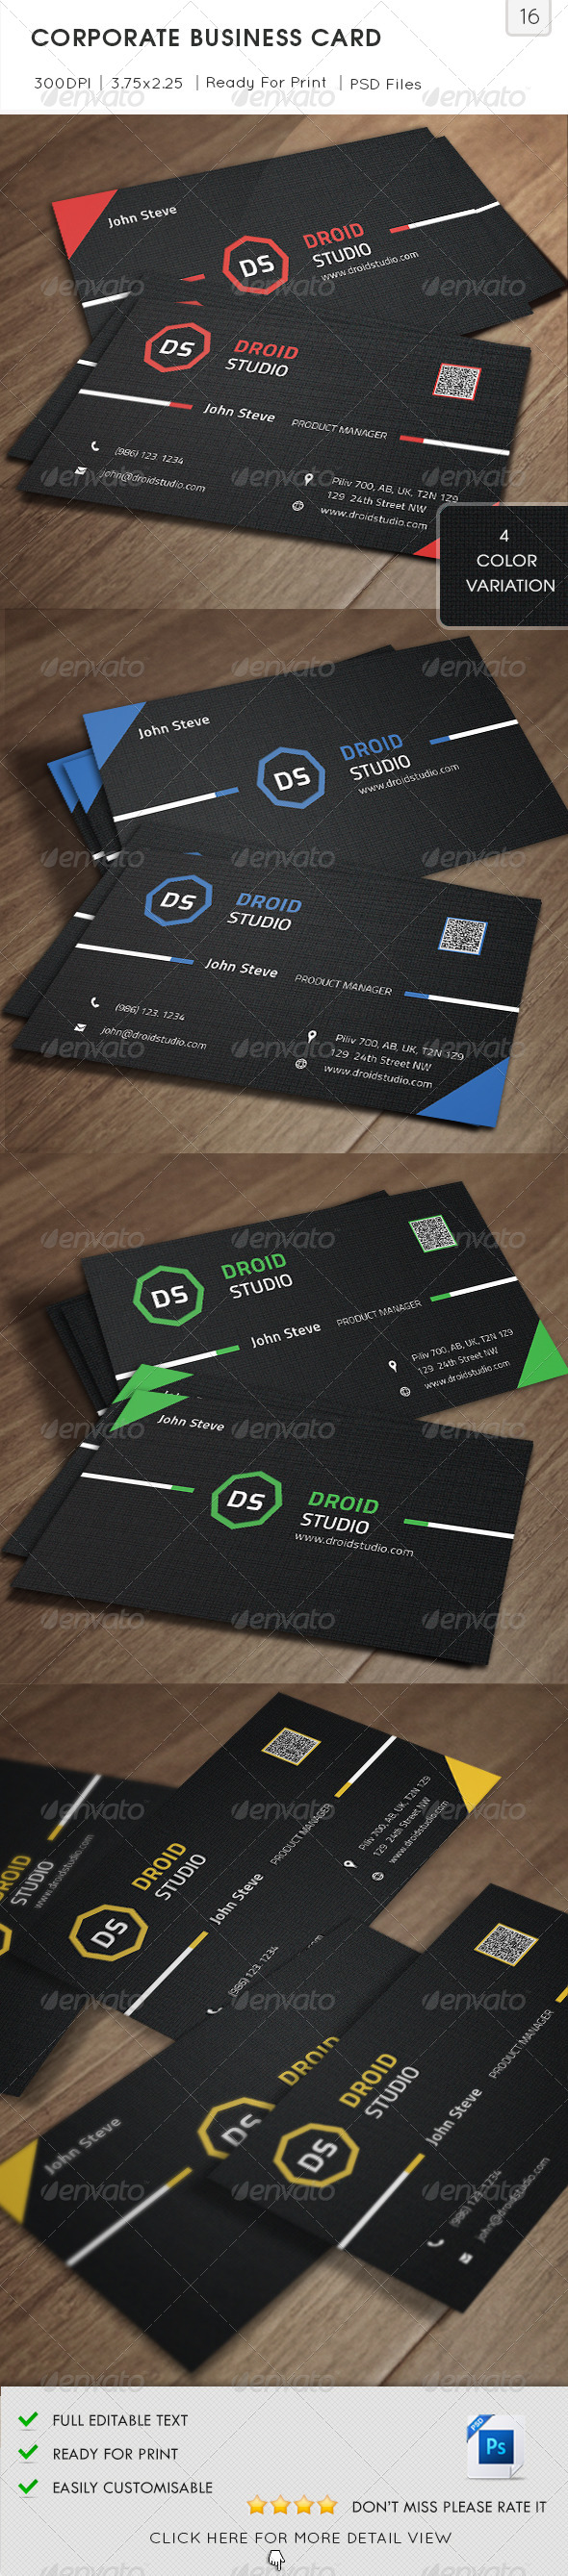 GraphicRiver Corporate Business Card v16 5798197